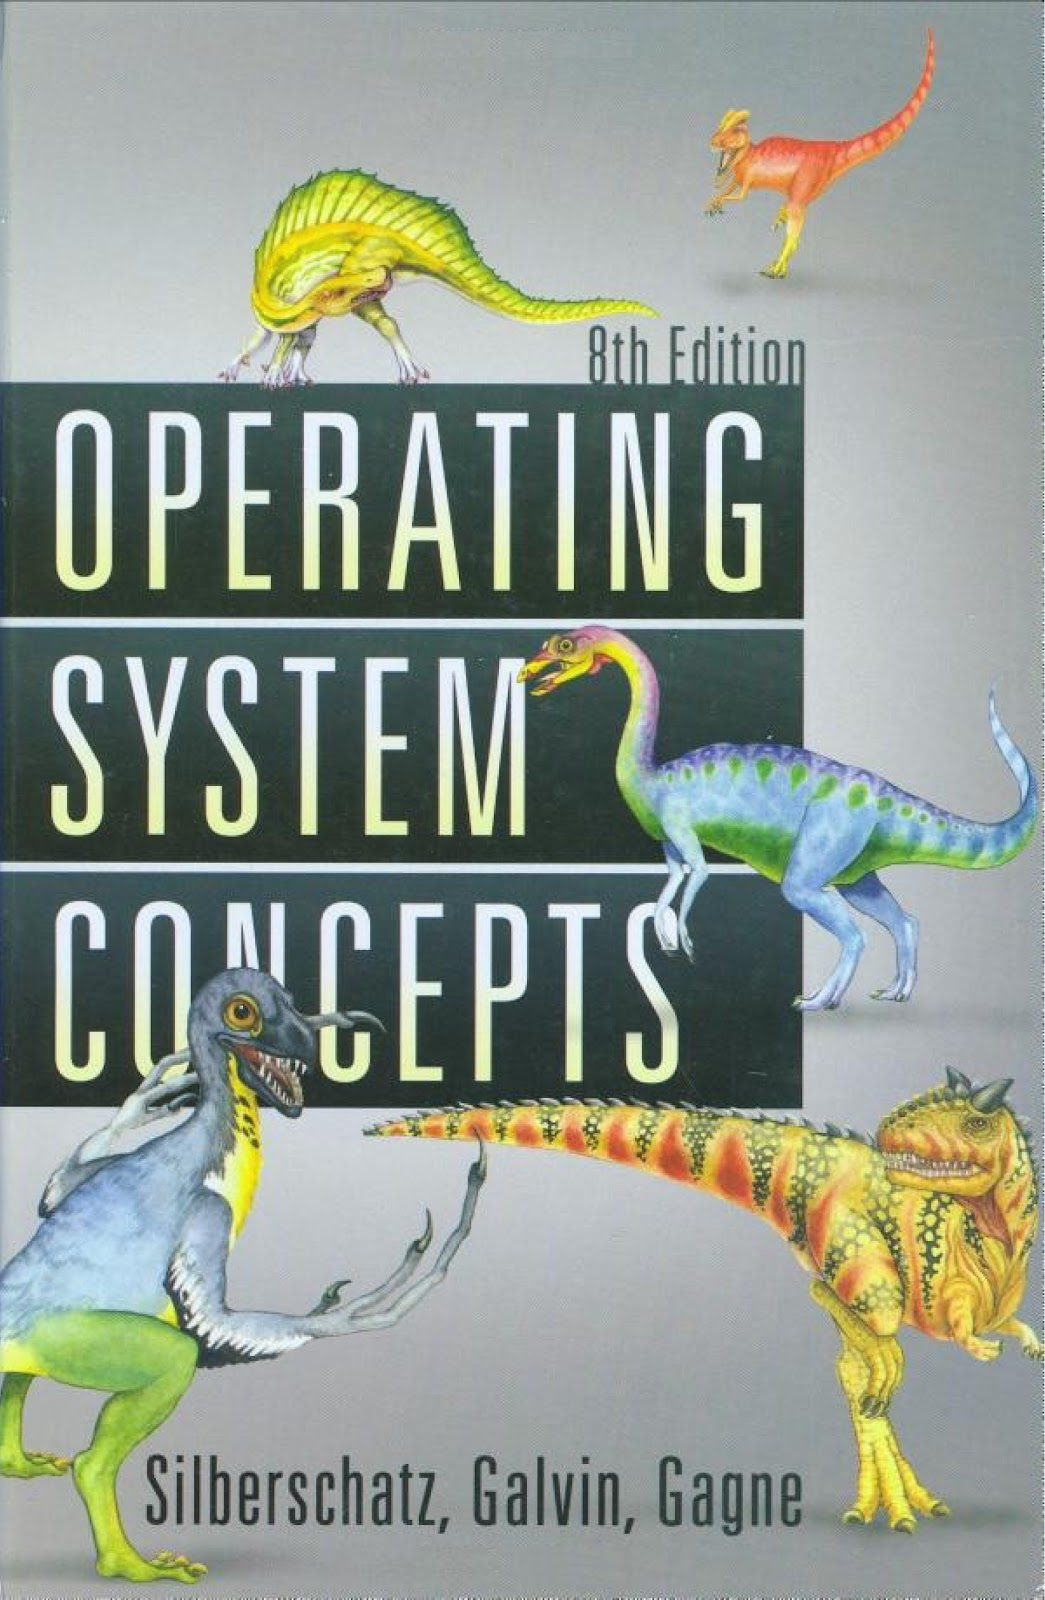 Abraham silberschatz operating system concepts 9th edition solution manual